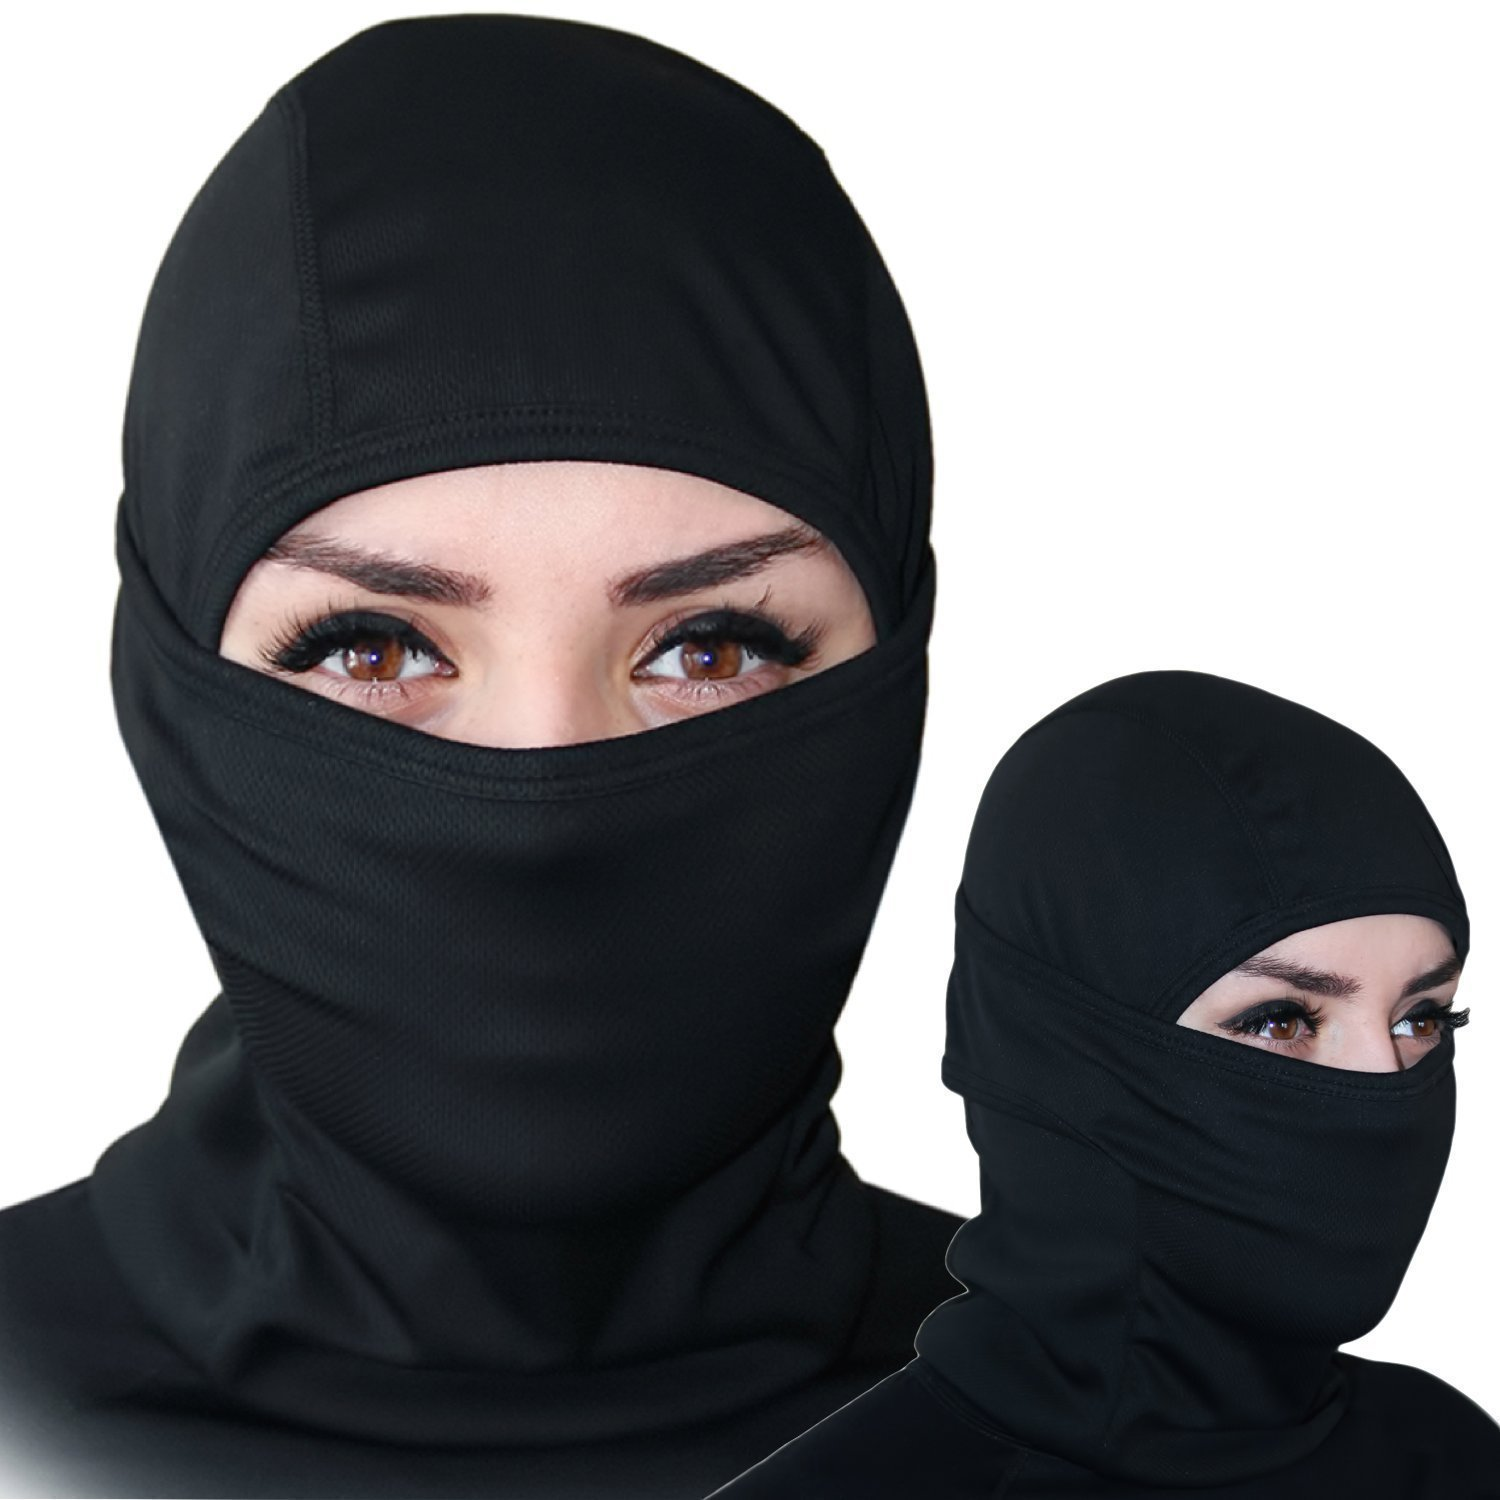 Self Pro Balaclava - Windproof Ski Mask - Cold Weather Face Mask Motorcycle Neck Warmer or Tactical Balaclava Hood - Ultimate Thermal Retention in Outdoors Hypo-allergenic Moisture Wicking by Self Pro